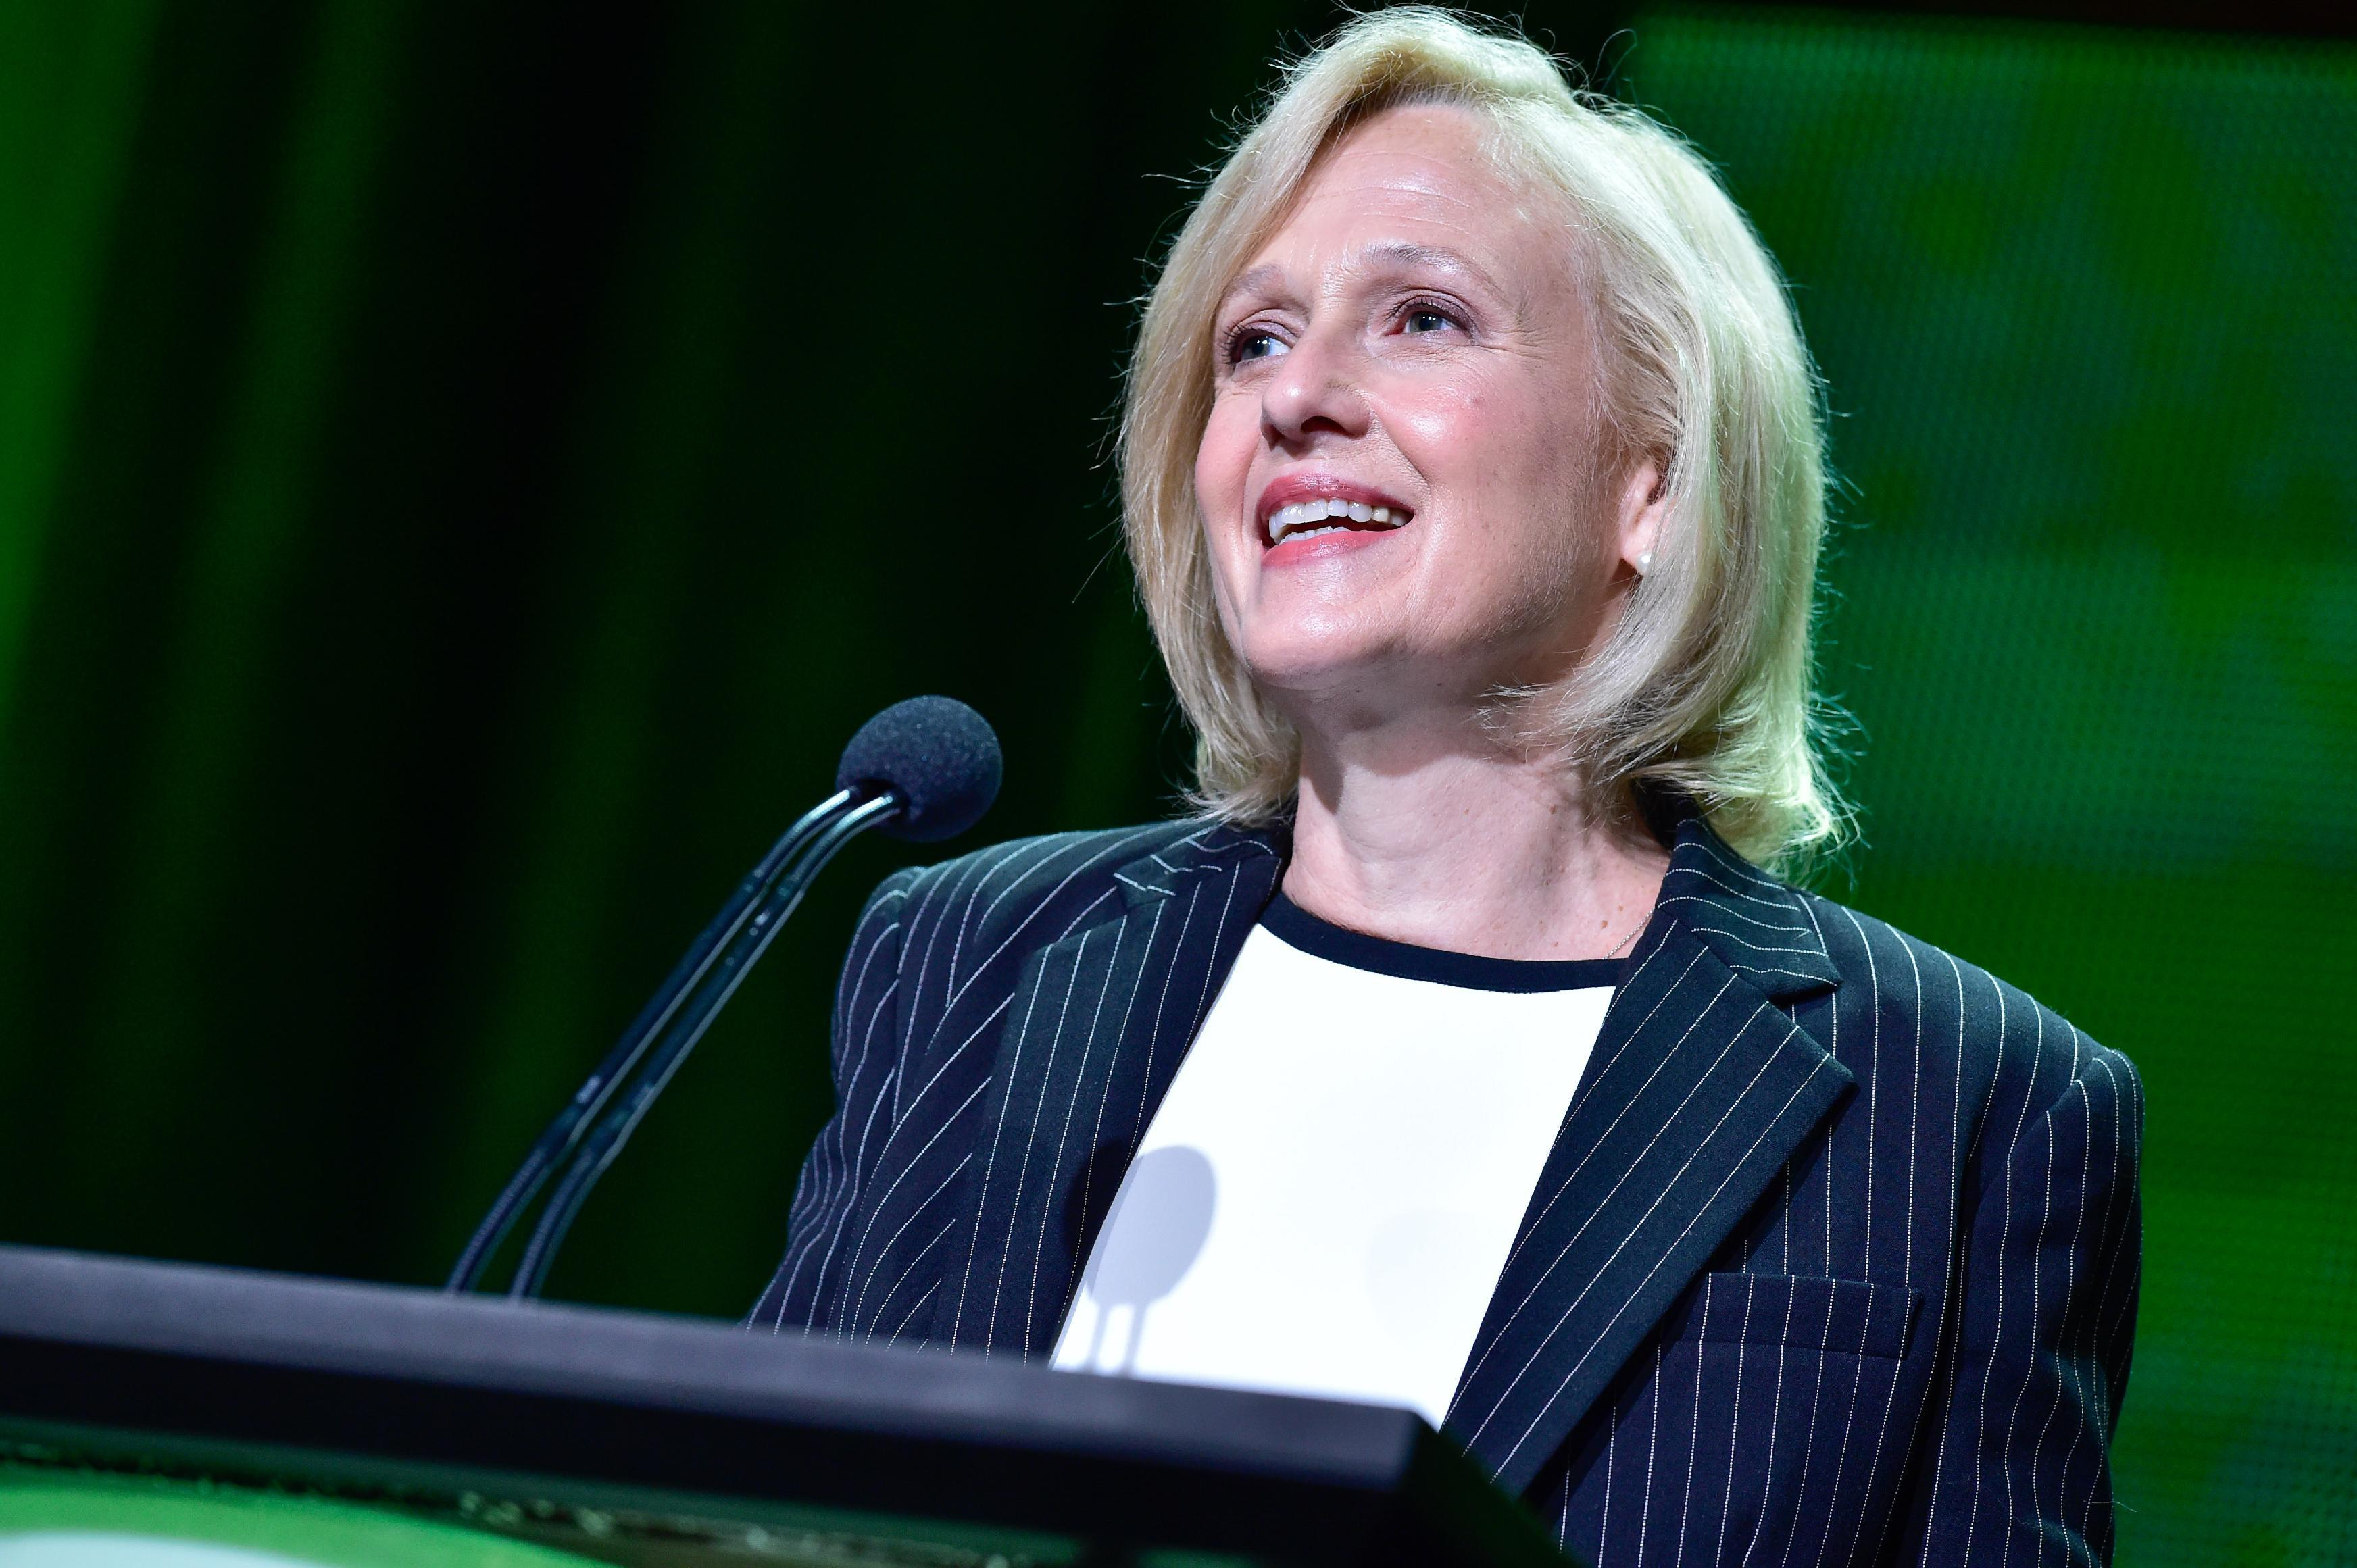 PBS Chief Paula Kerger Celebrates a Hectic Anniversary